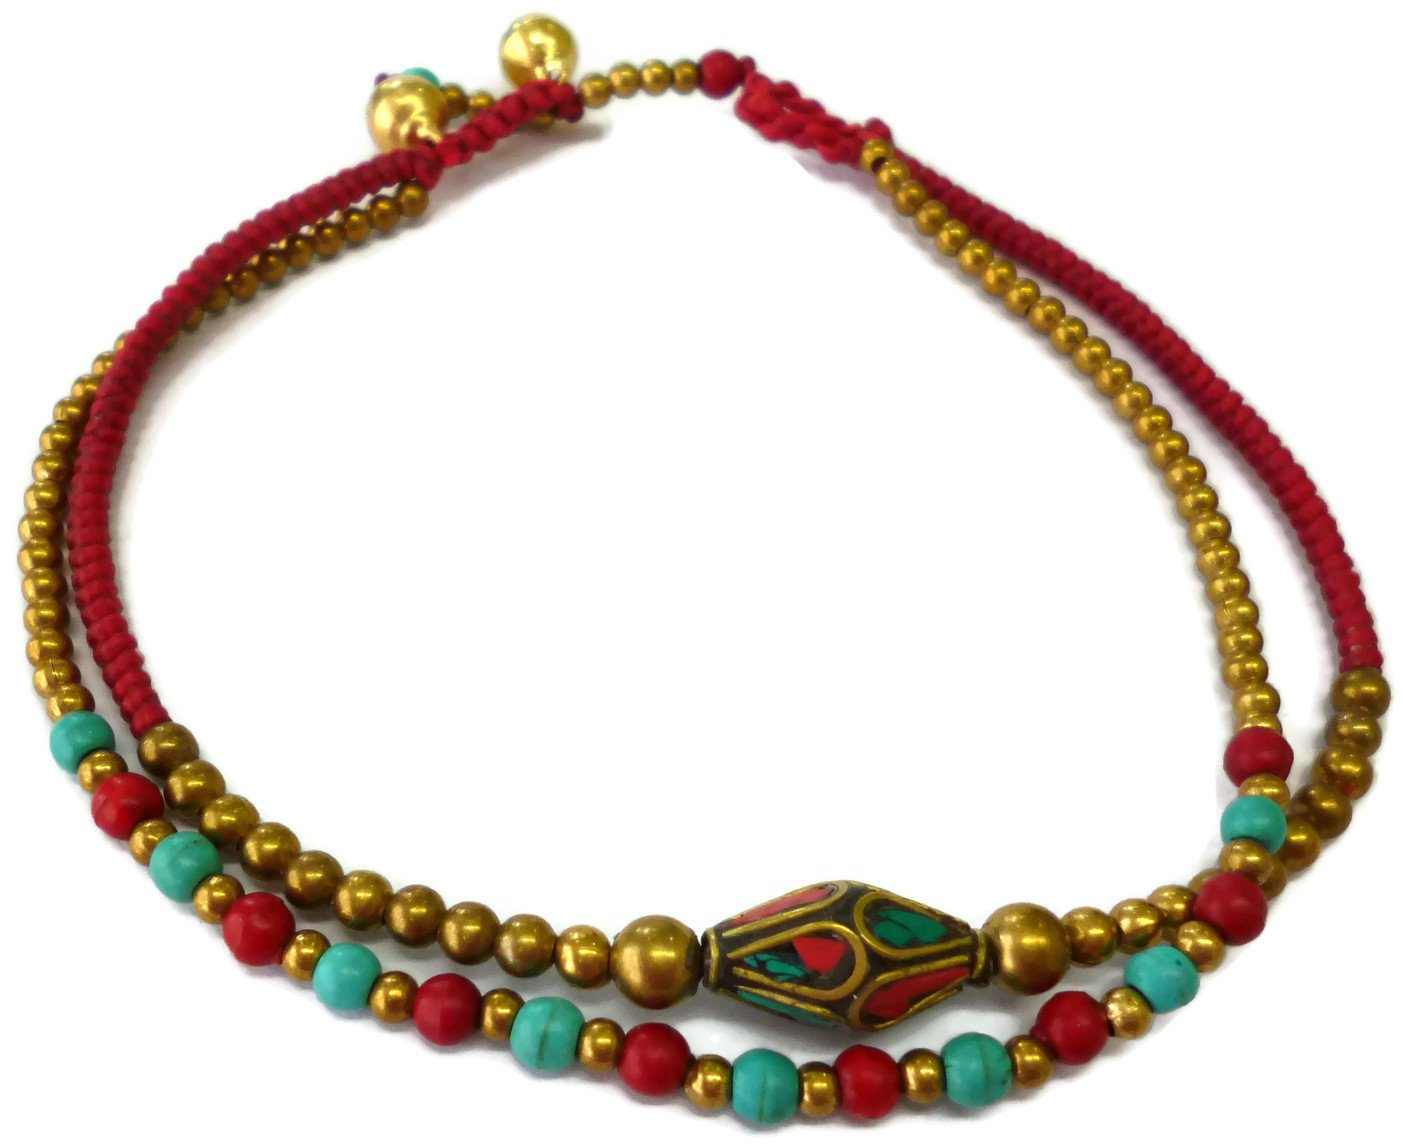 Moose546 Tibetan Charm and Bells Ankle Bracelets with Beads 11 Inches Cord Anklets for Women FC-056 (Red)